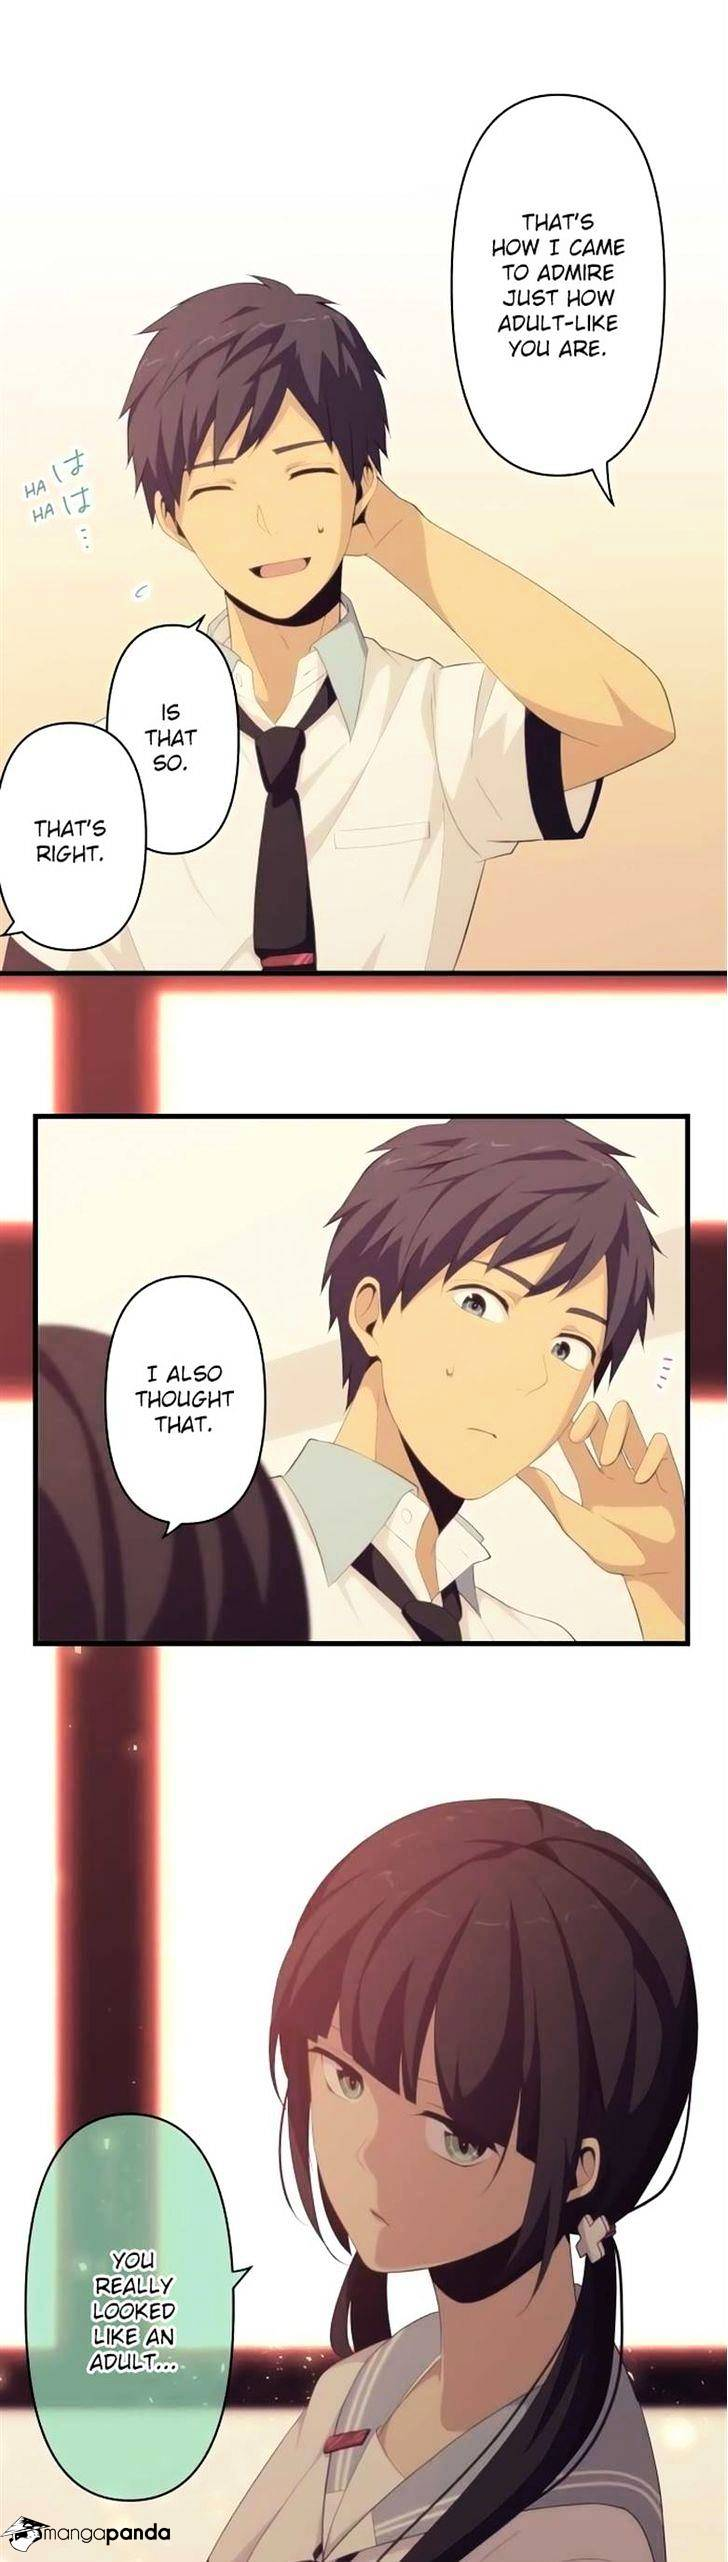 ReLIFE Chapter 130  Online Free Manga Read Image 5